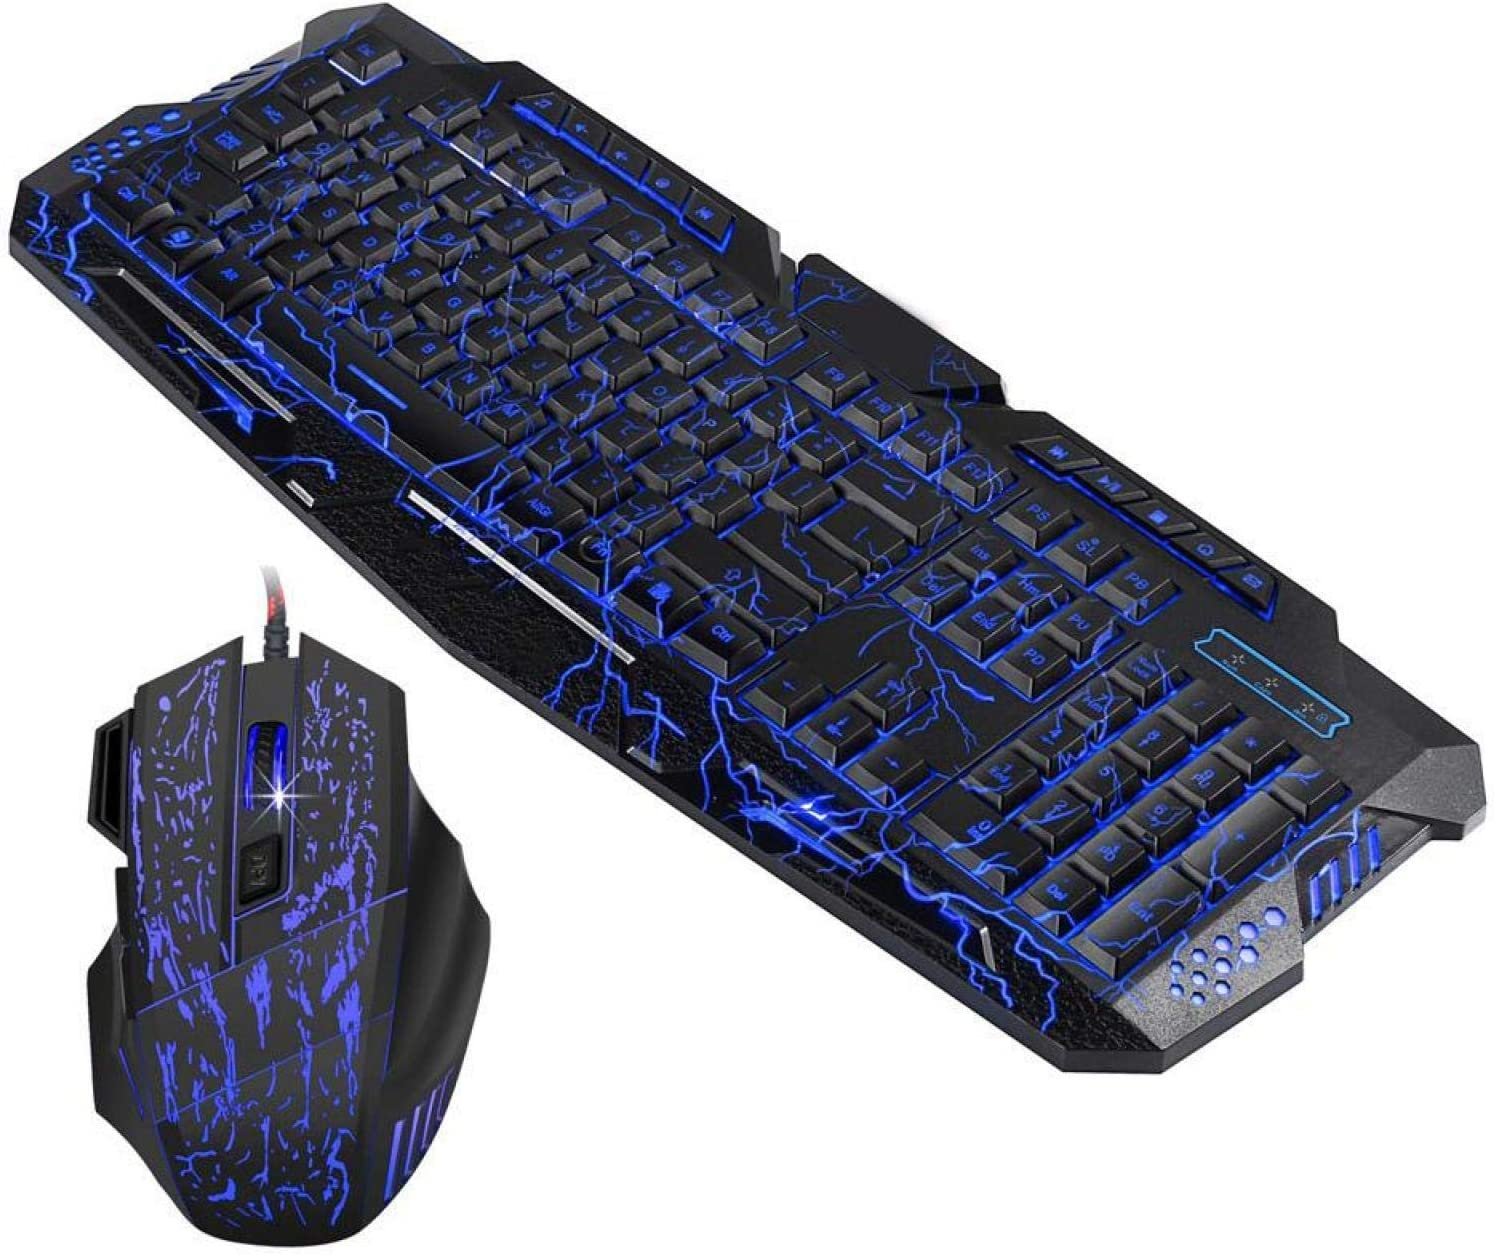 Wired Mouse Backlit Simple Computer Accessory Keyboard Mouse Set Practical Mechanical Keyboard for Desktop for Computer